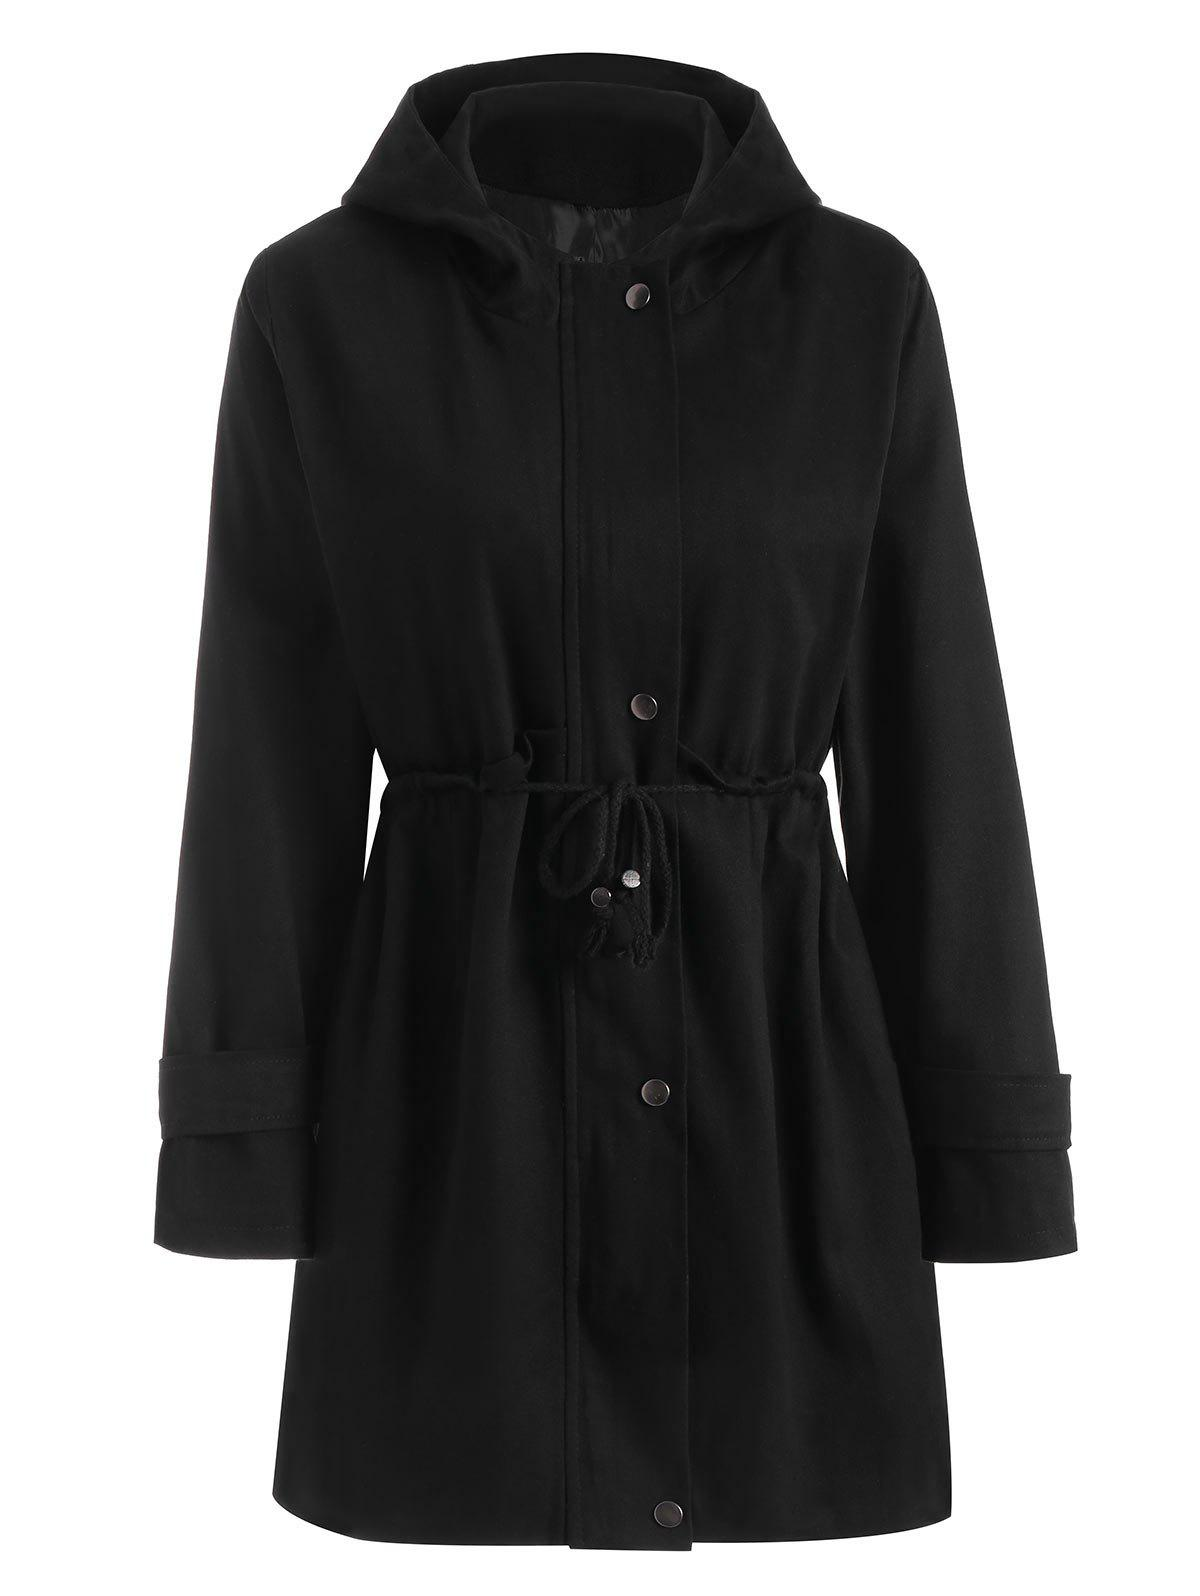 Hooded Zipper Drawstring Waist Plus Size CoatWOMEN<br><br>Size: 3XL; Color: BLACK; Clothes Type: Jackets; Material: Polyester; Type: Slim; Shirt Length: Long; Sleeve Length: Full; Collar: Hooded; Pattern Type: Solid; Style: Fashion; Season: Fall,Winter; Weight: 0.7100kg; Package Contents: 1 x Coat;